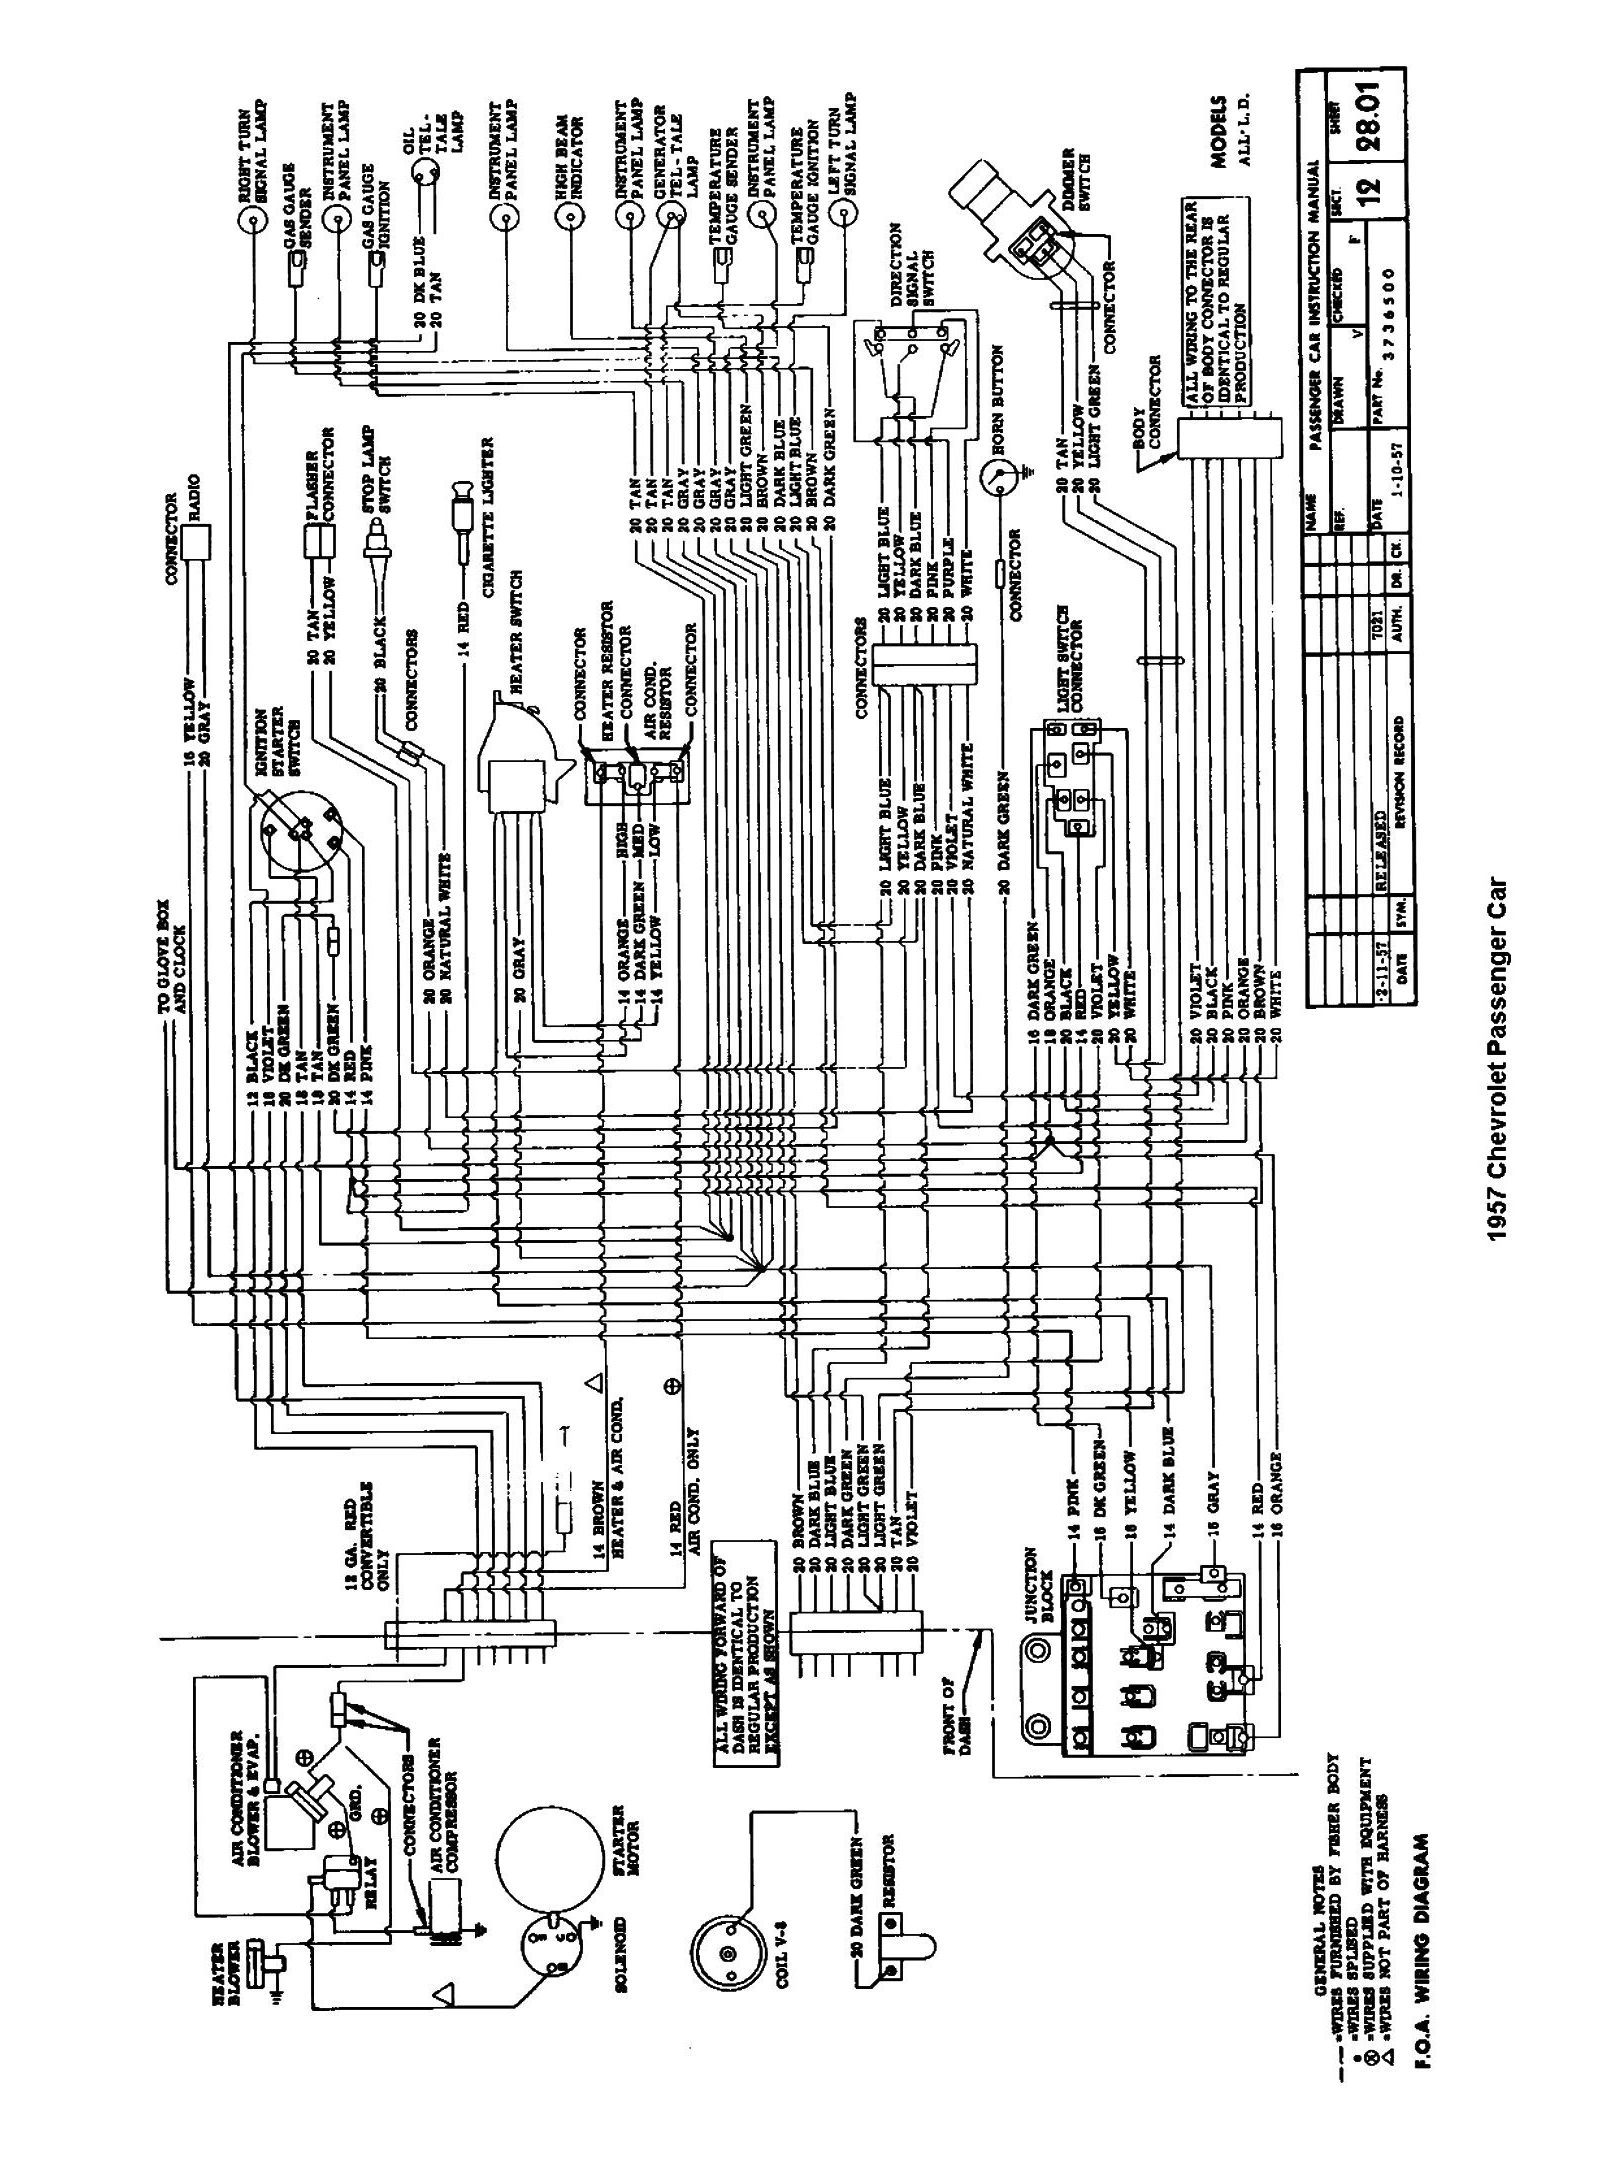 1958 Opel Wiring Diagram Schematics Diagrams 1956 Find U2022 Rh Empcom Co 1957 1960